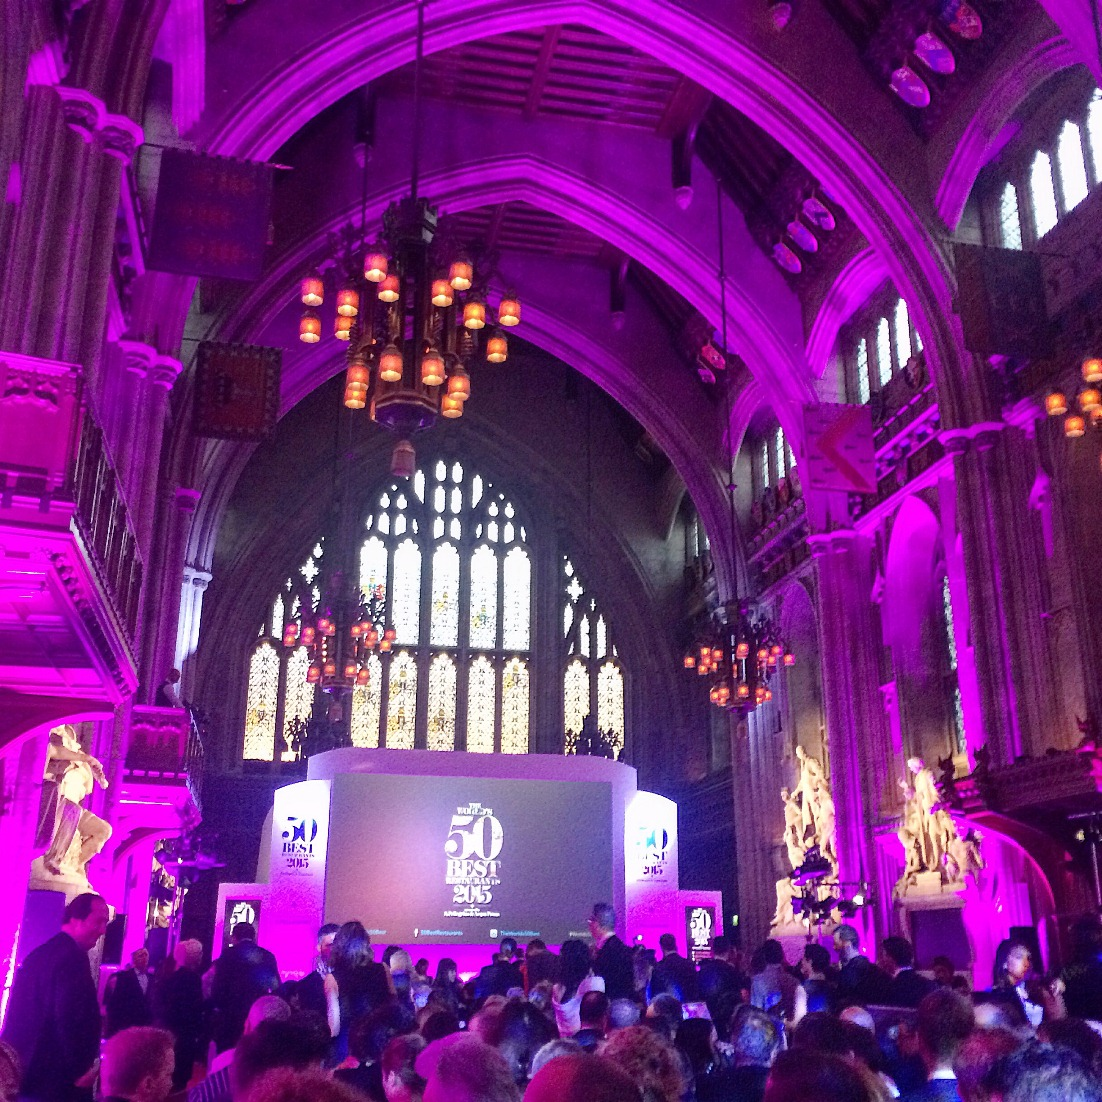 World's 50 Best 2015 Awards Ceremony at The Guildhall in London